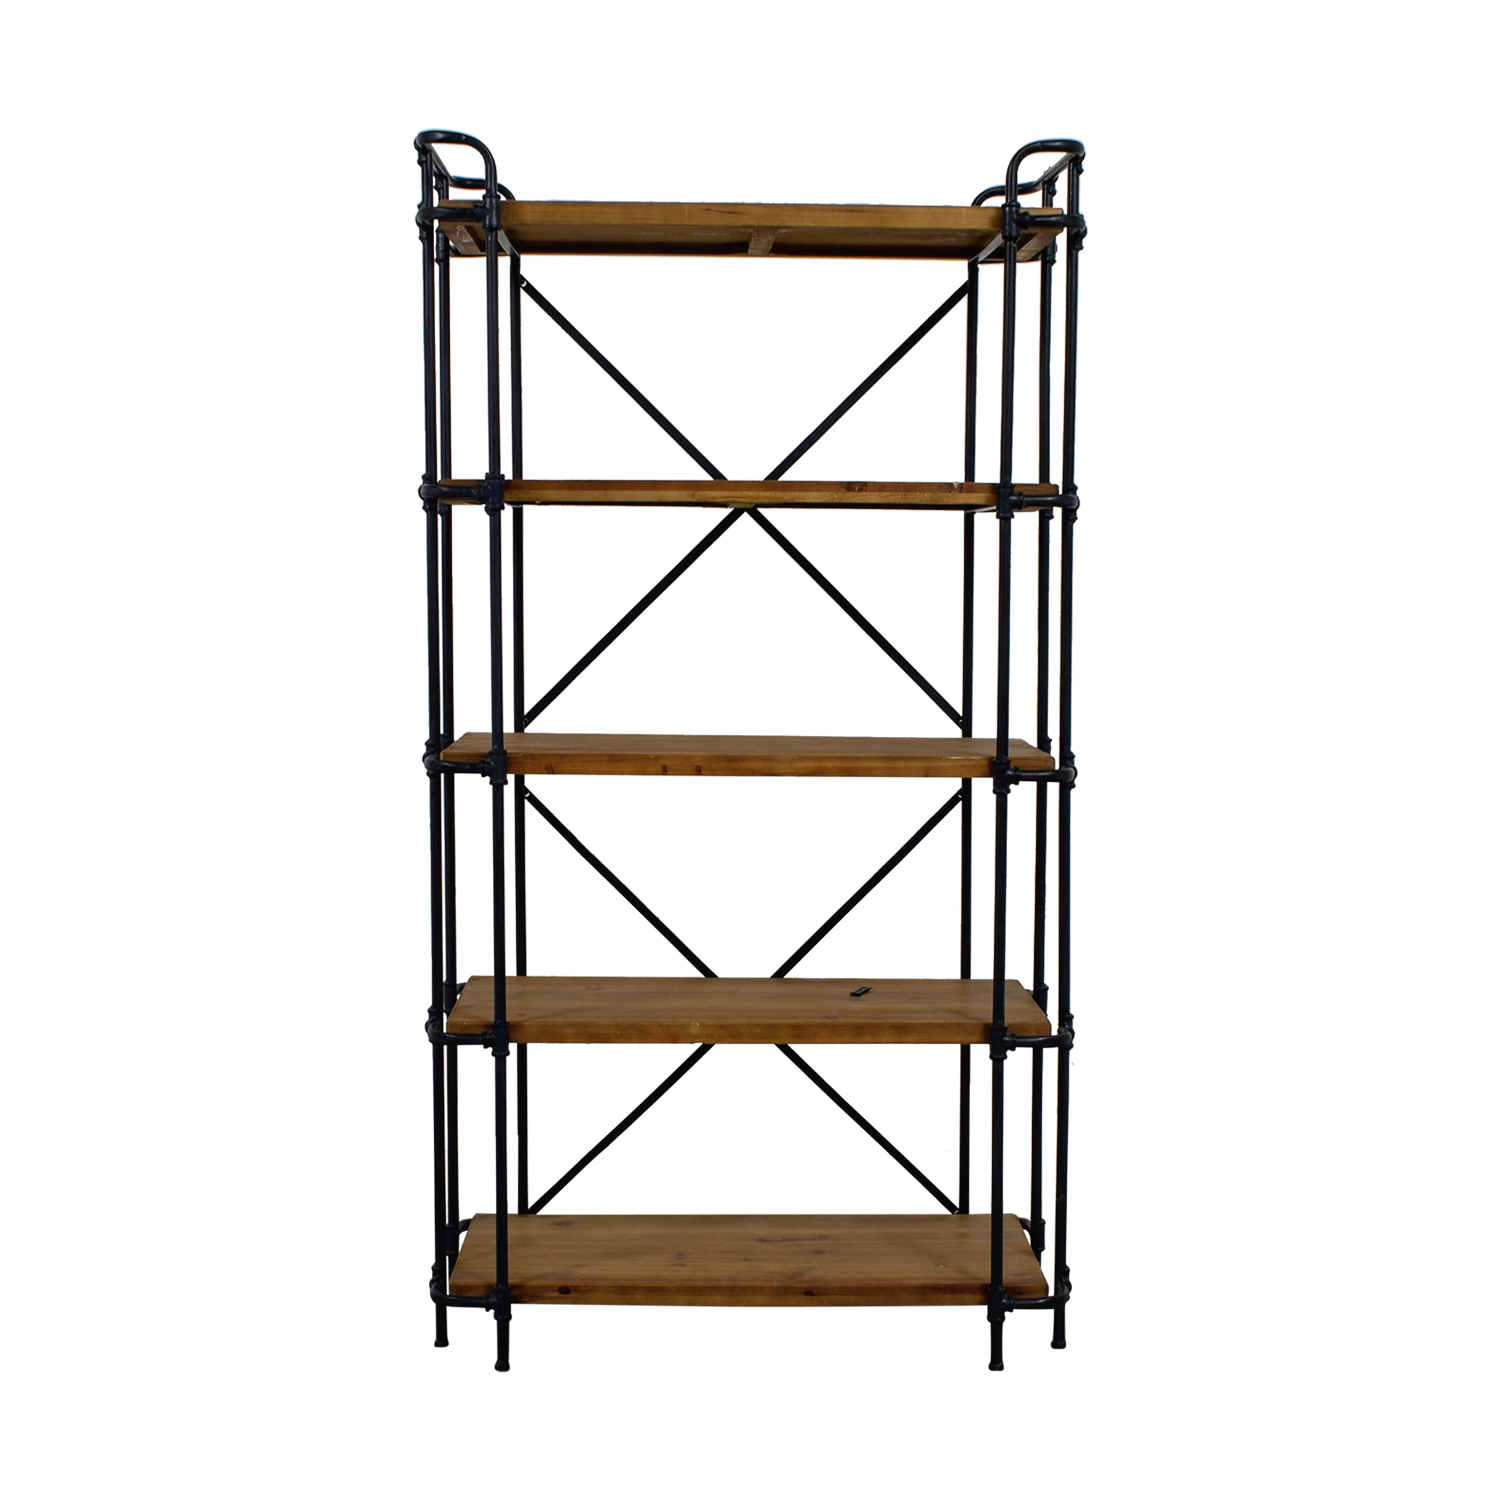 Joss & Main Industrial Etagere Bookcase / Storage